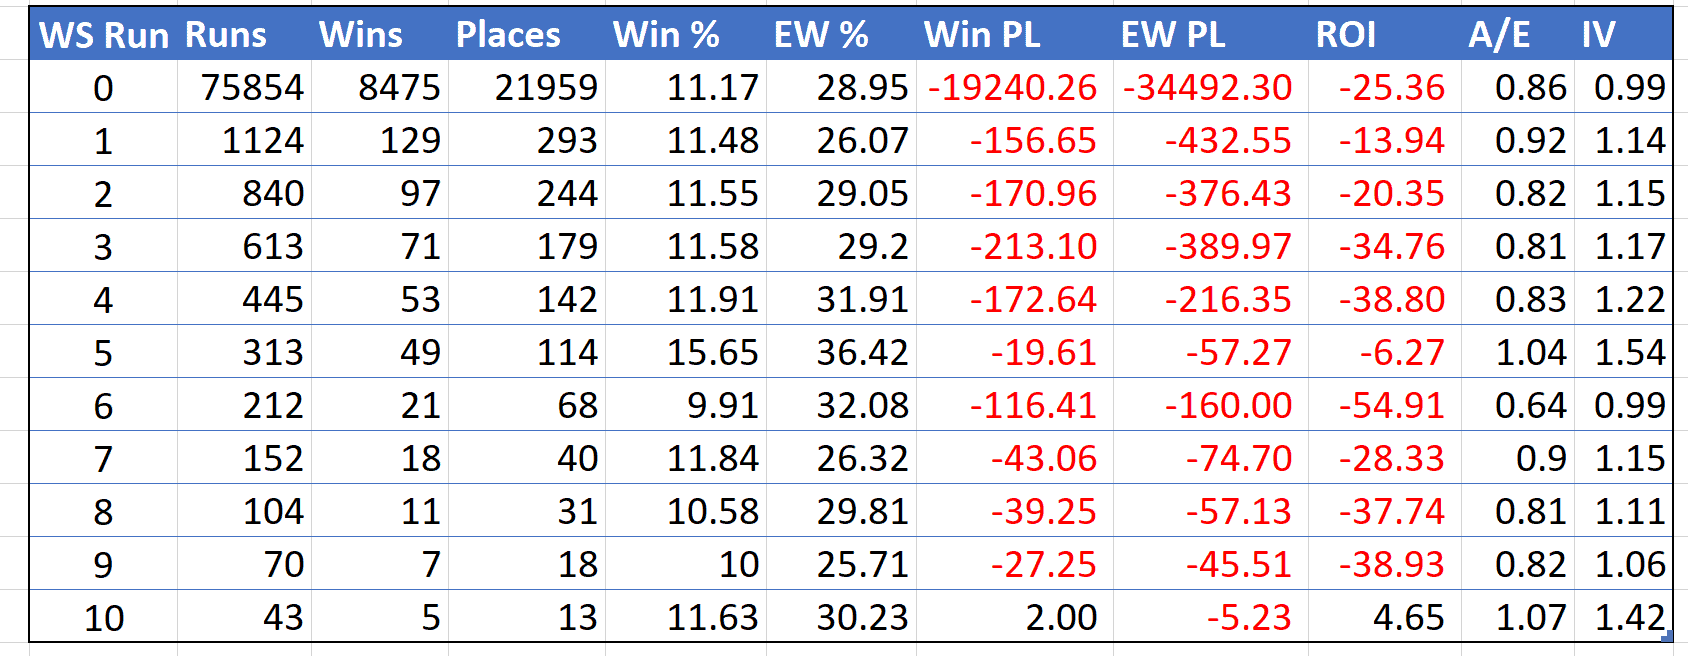 Table view of horse performance by wind surgery run, 19/1/18-18/11/18